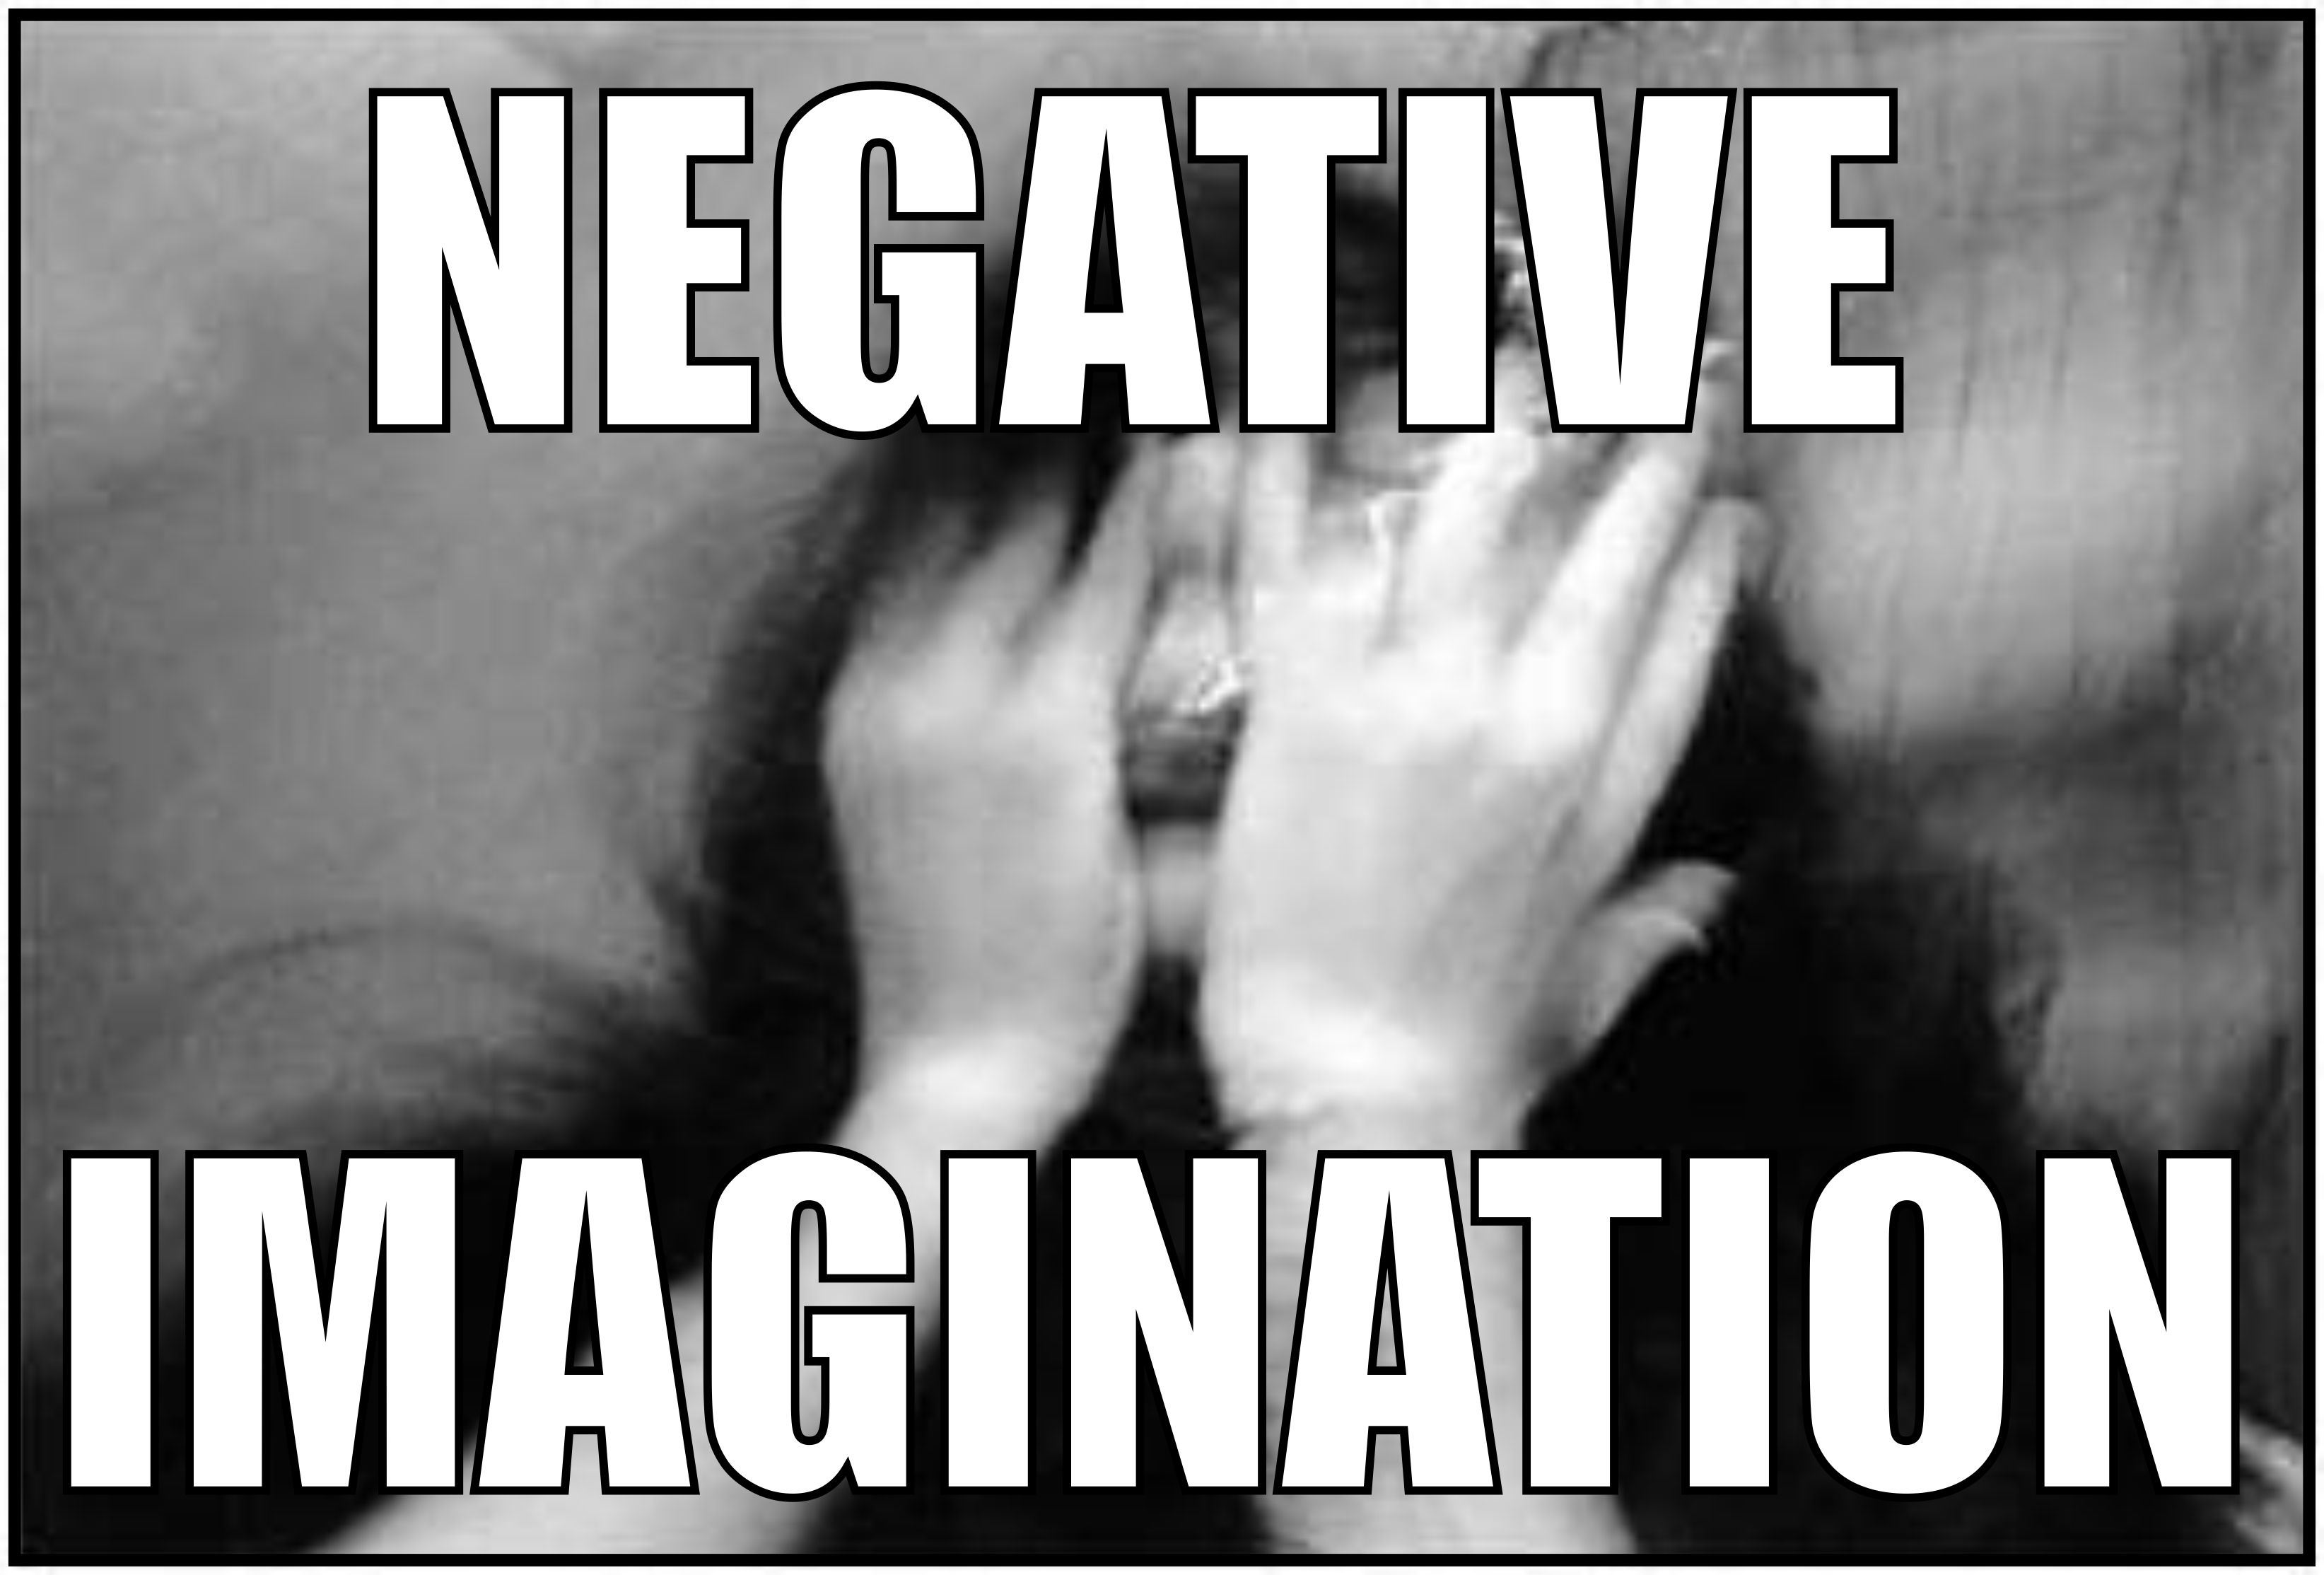 Our Negative Imagination is Holding Us Back